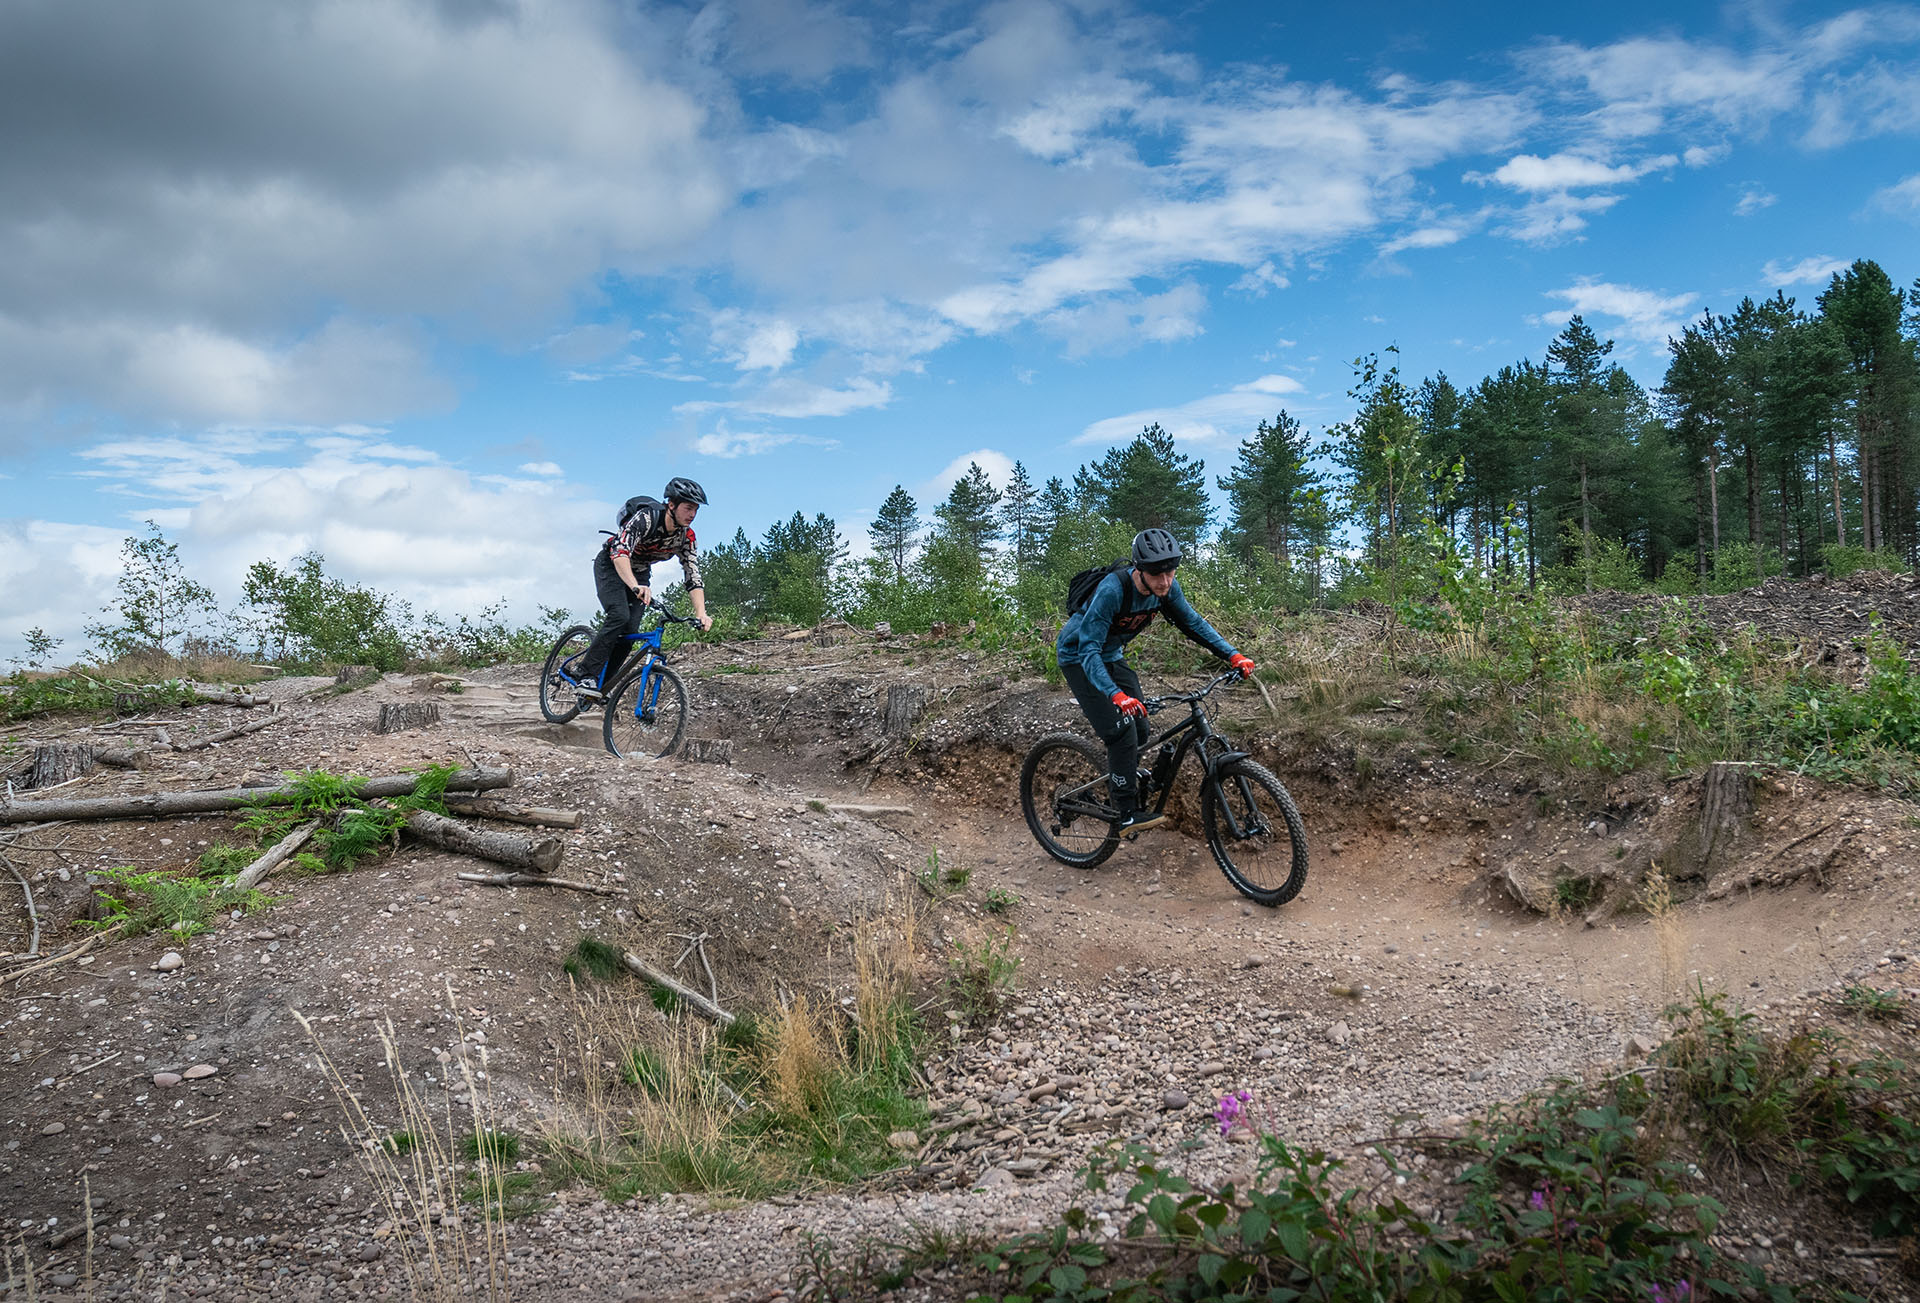 Drop-offs and berm on the 'Aunt Flow' section of Follow the Dog, one of the red-graded trails at Cannock Chase